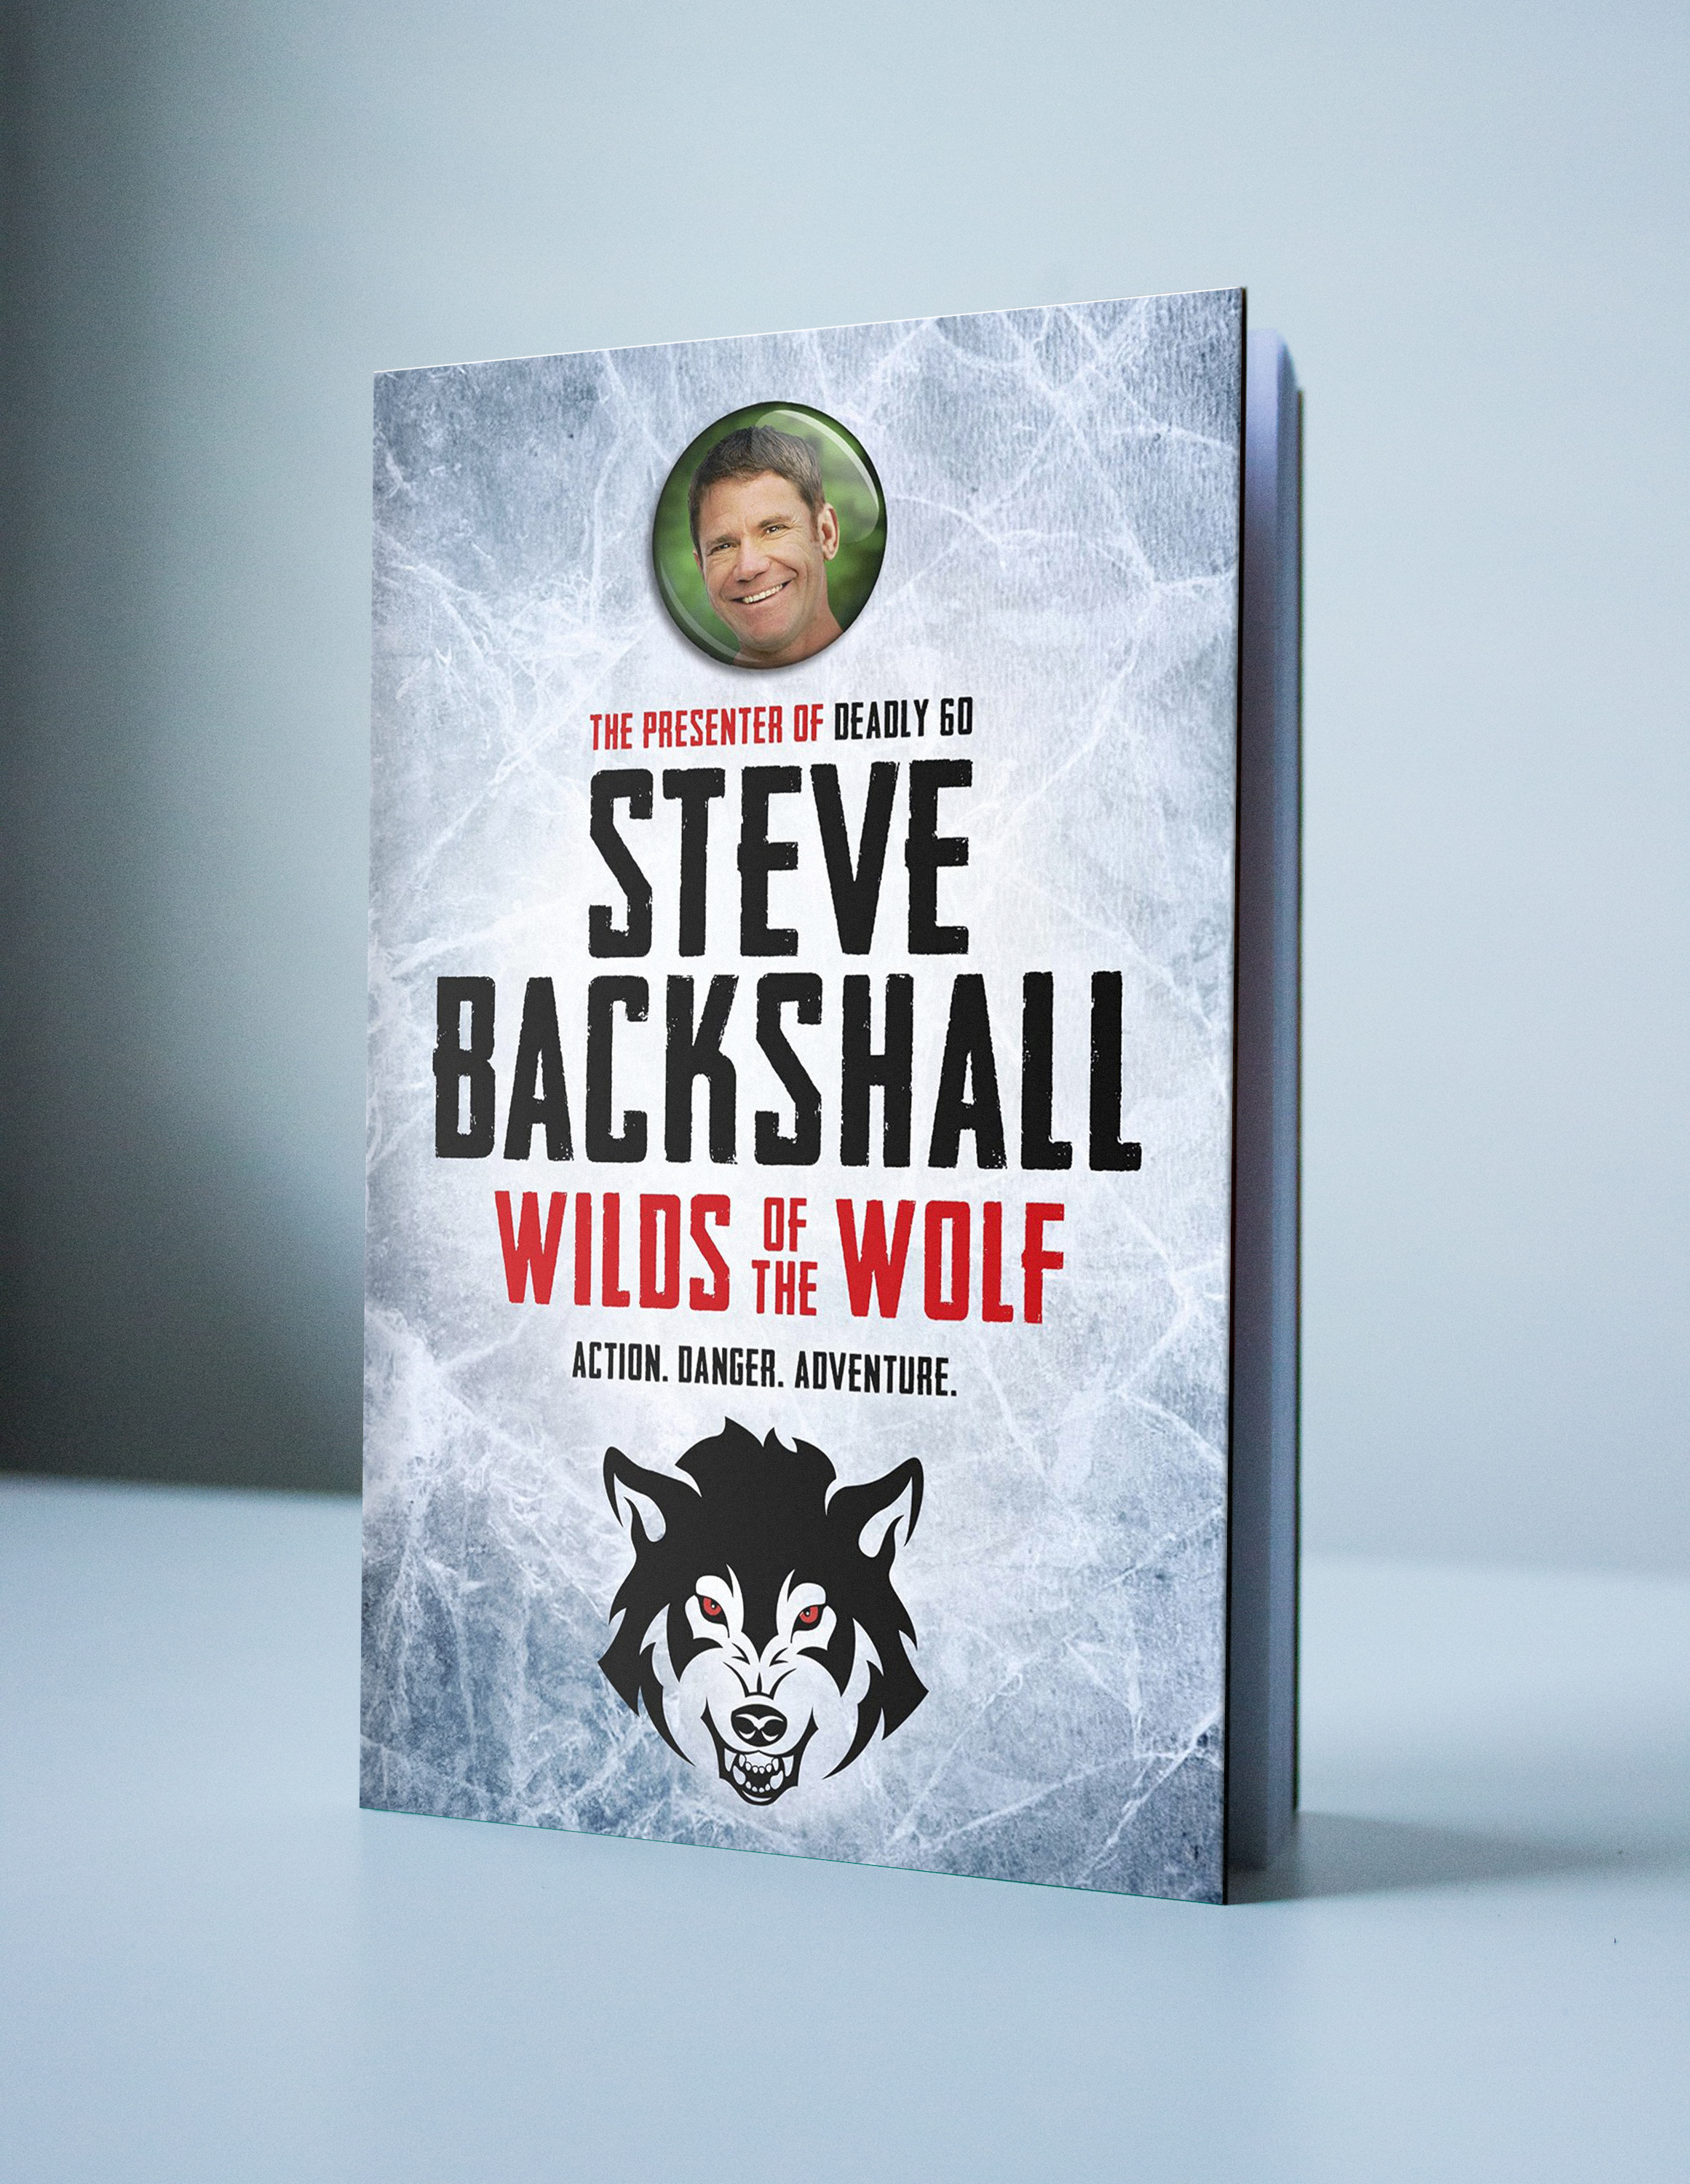 Steve Backshall Wilds Of The Wolf